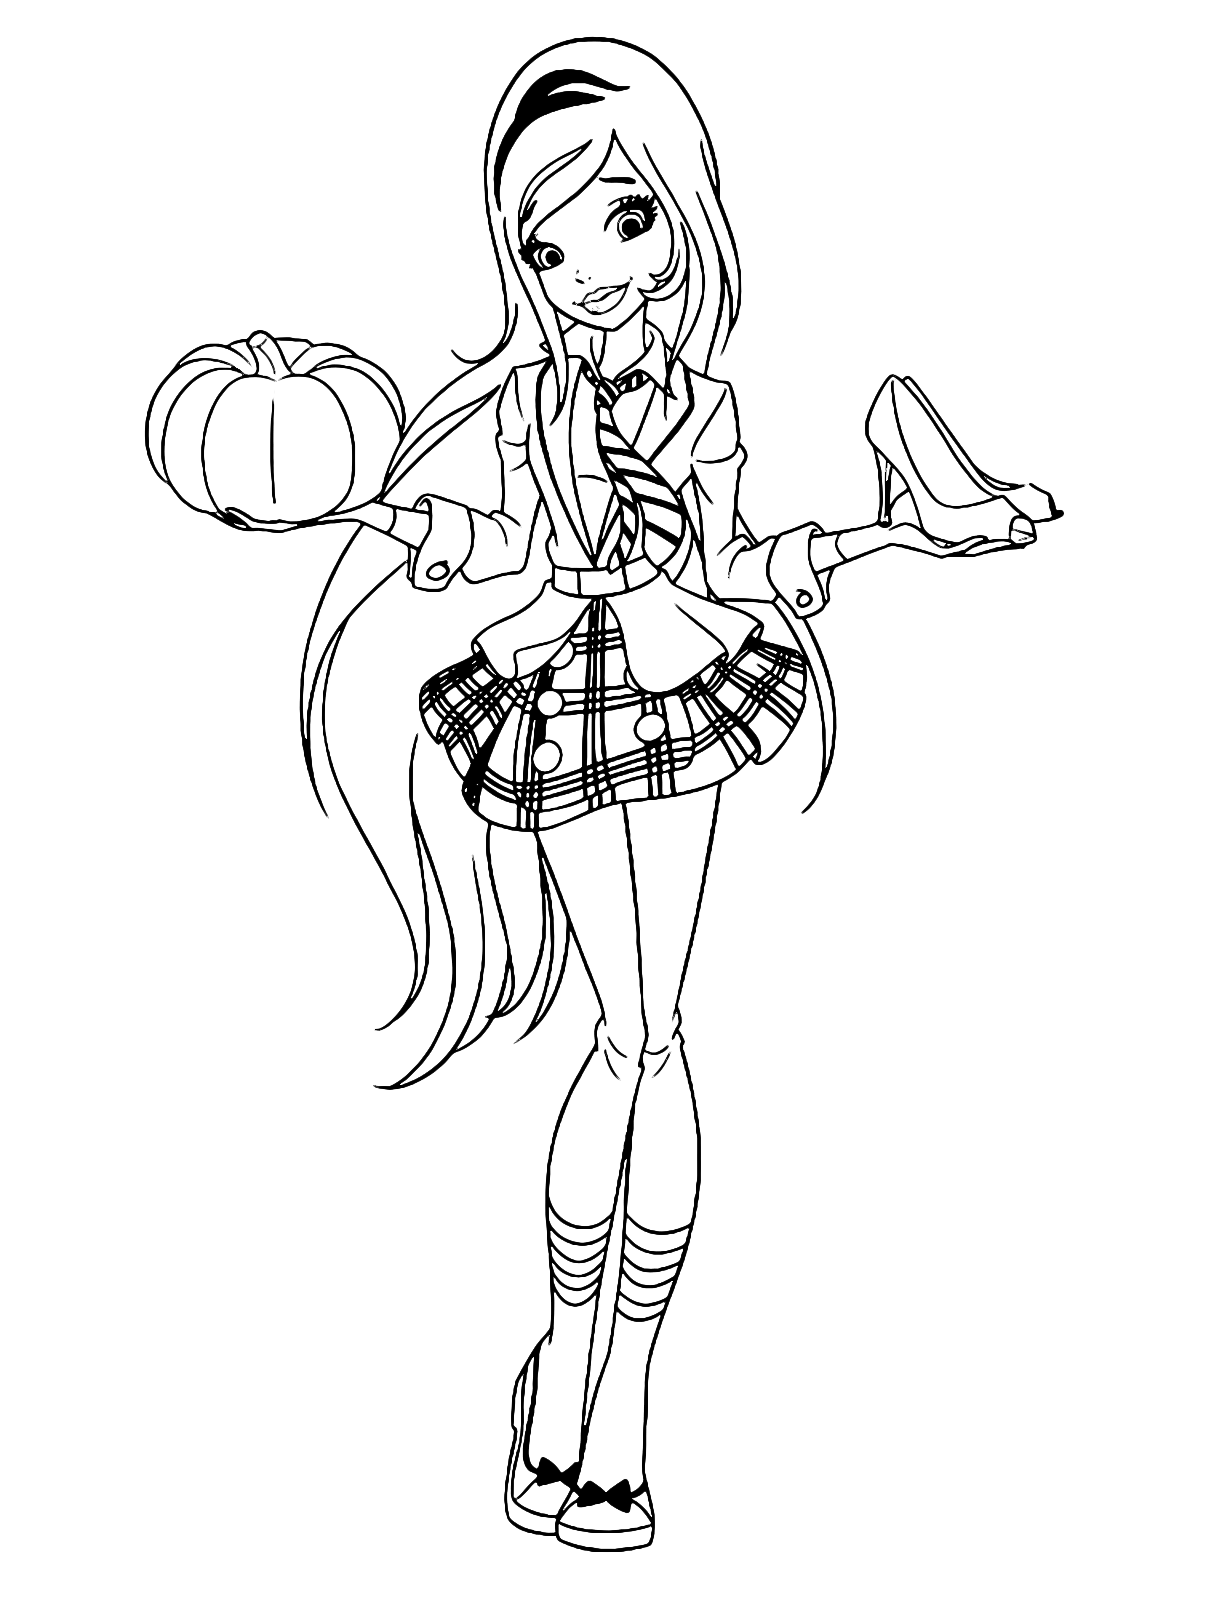 regal academy roses with a pumpkin in one hand and evening shoes in the other